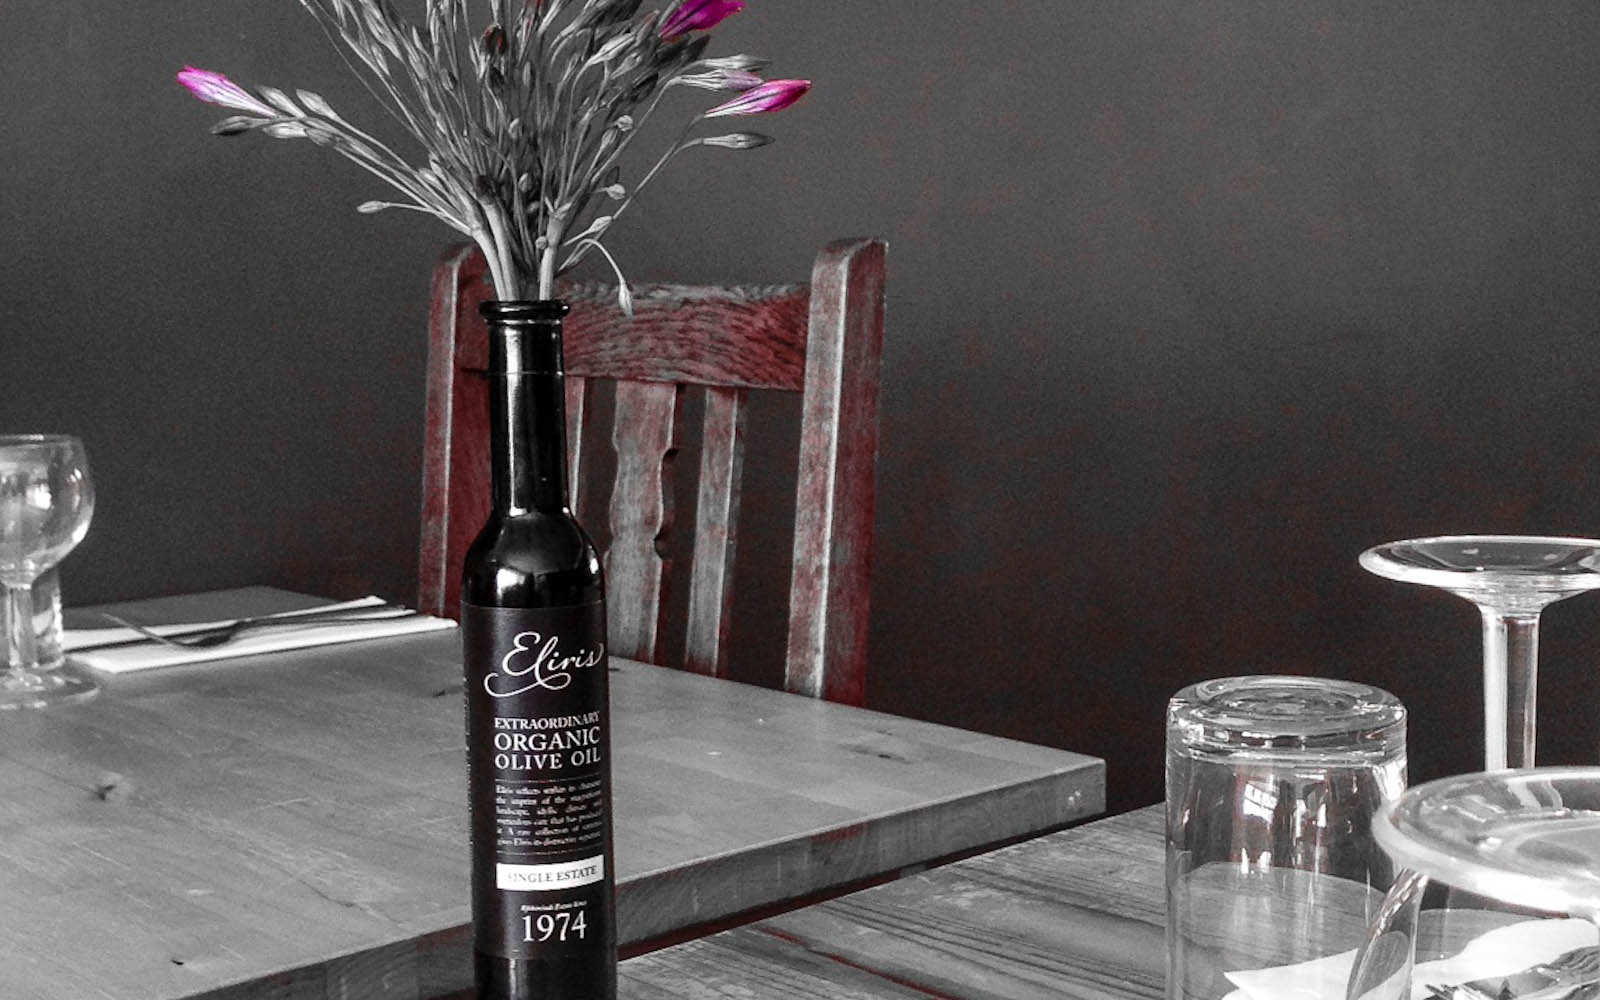 Eliris organic olive oil at The Greeenhouse Restaurant, Cornwall